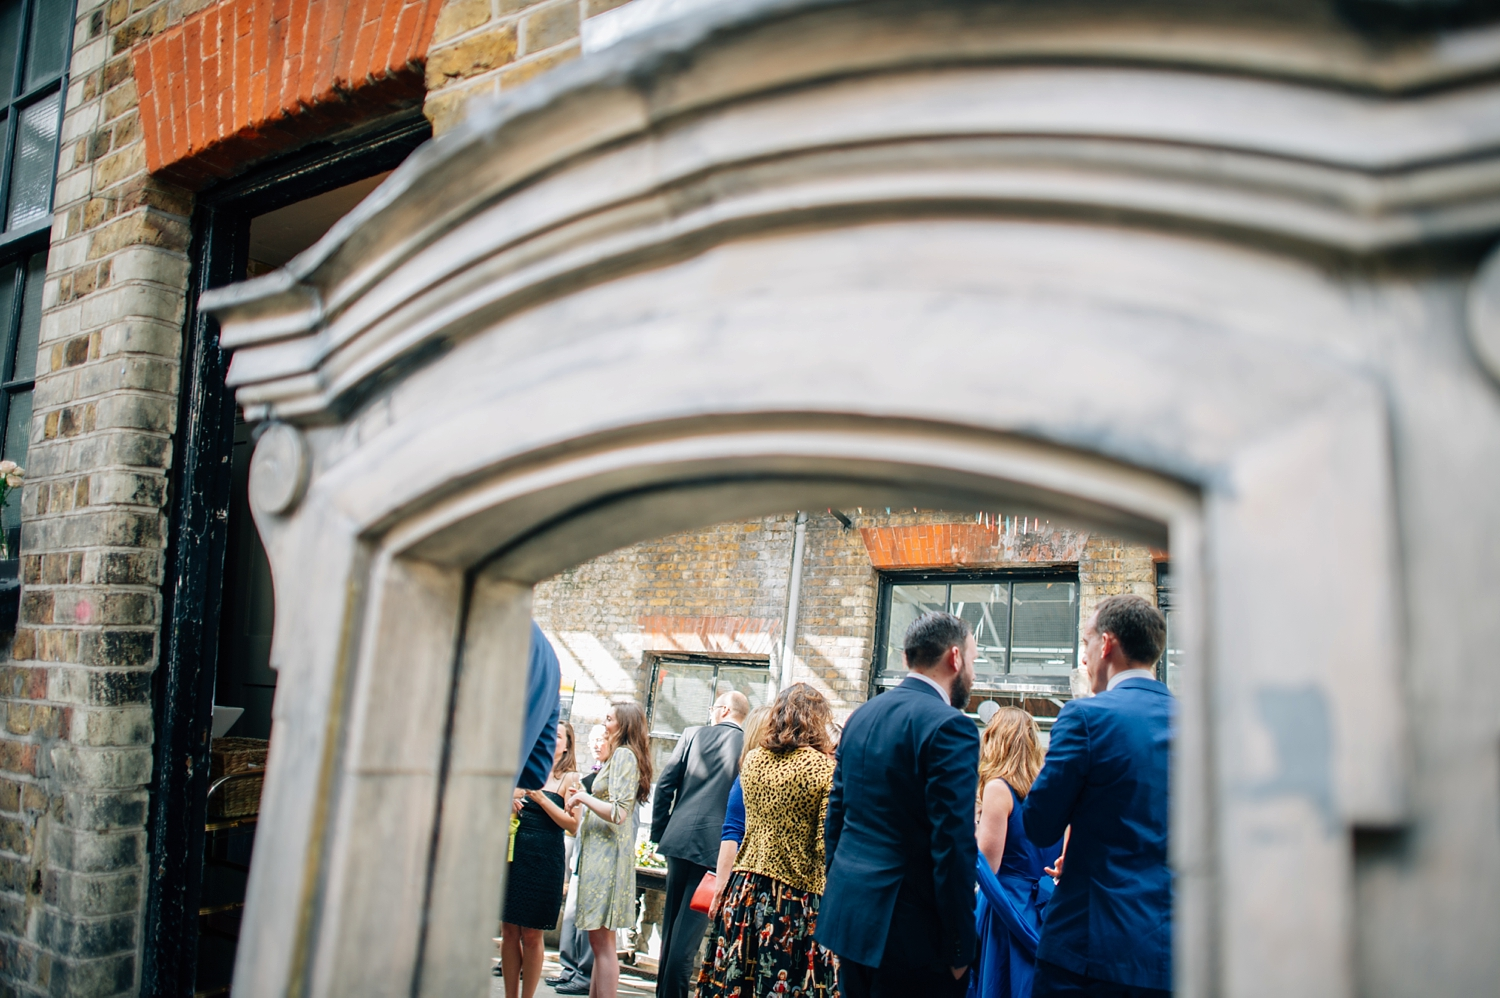 0141-lisa-devine-alternative-wedding-photography-london-hackney-dalston-london-photography-townhall-hotel.JPG